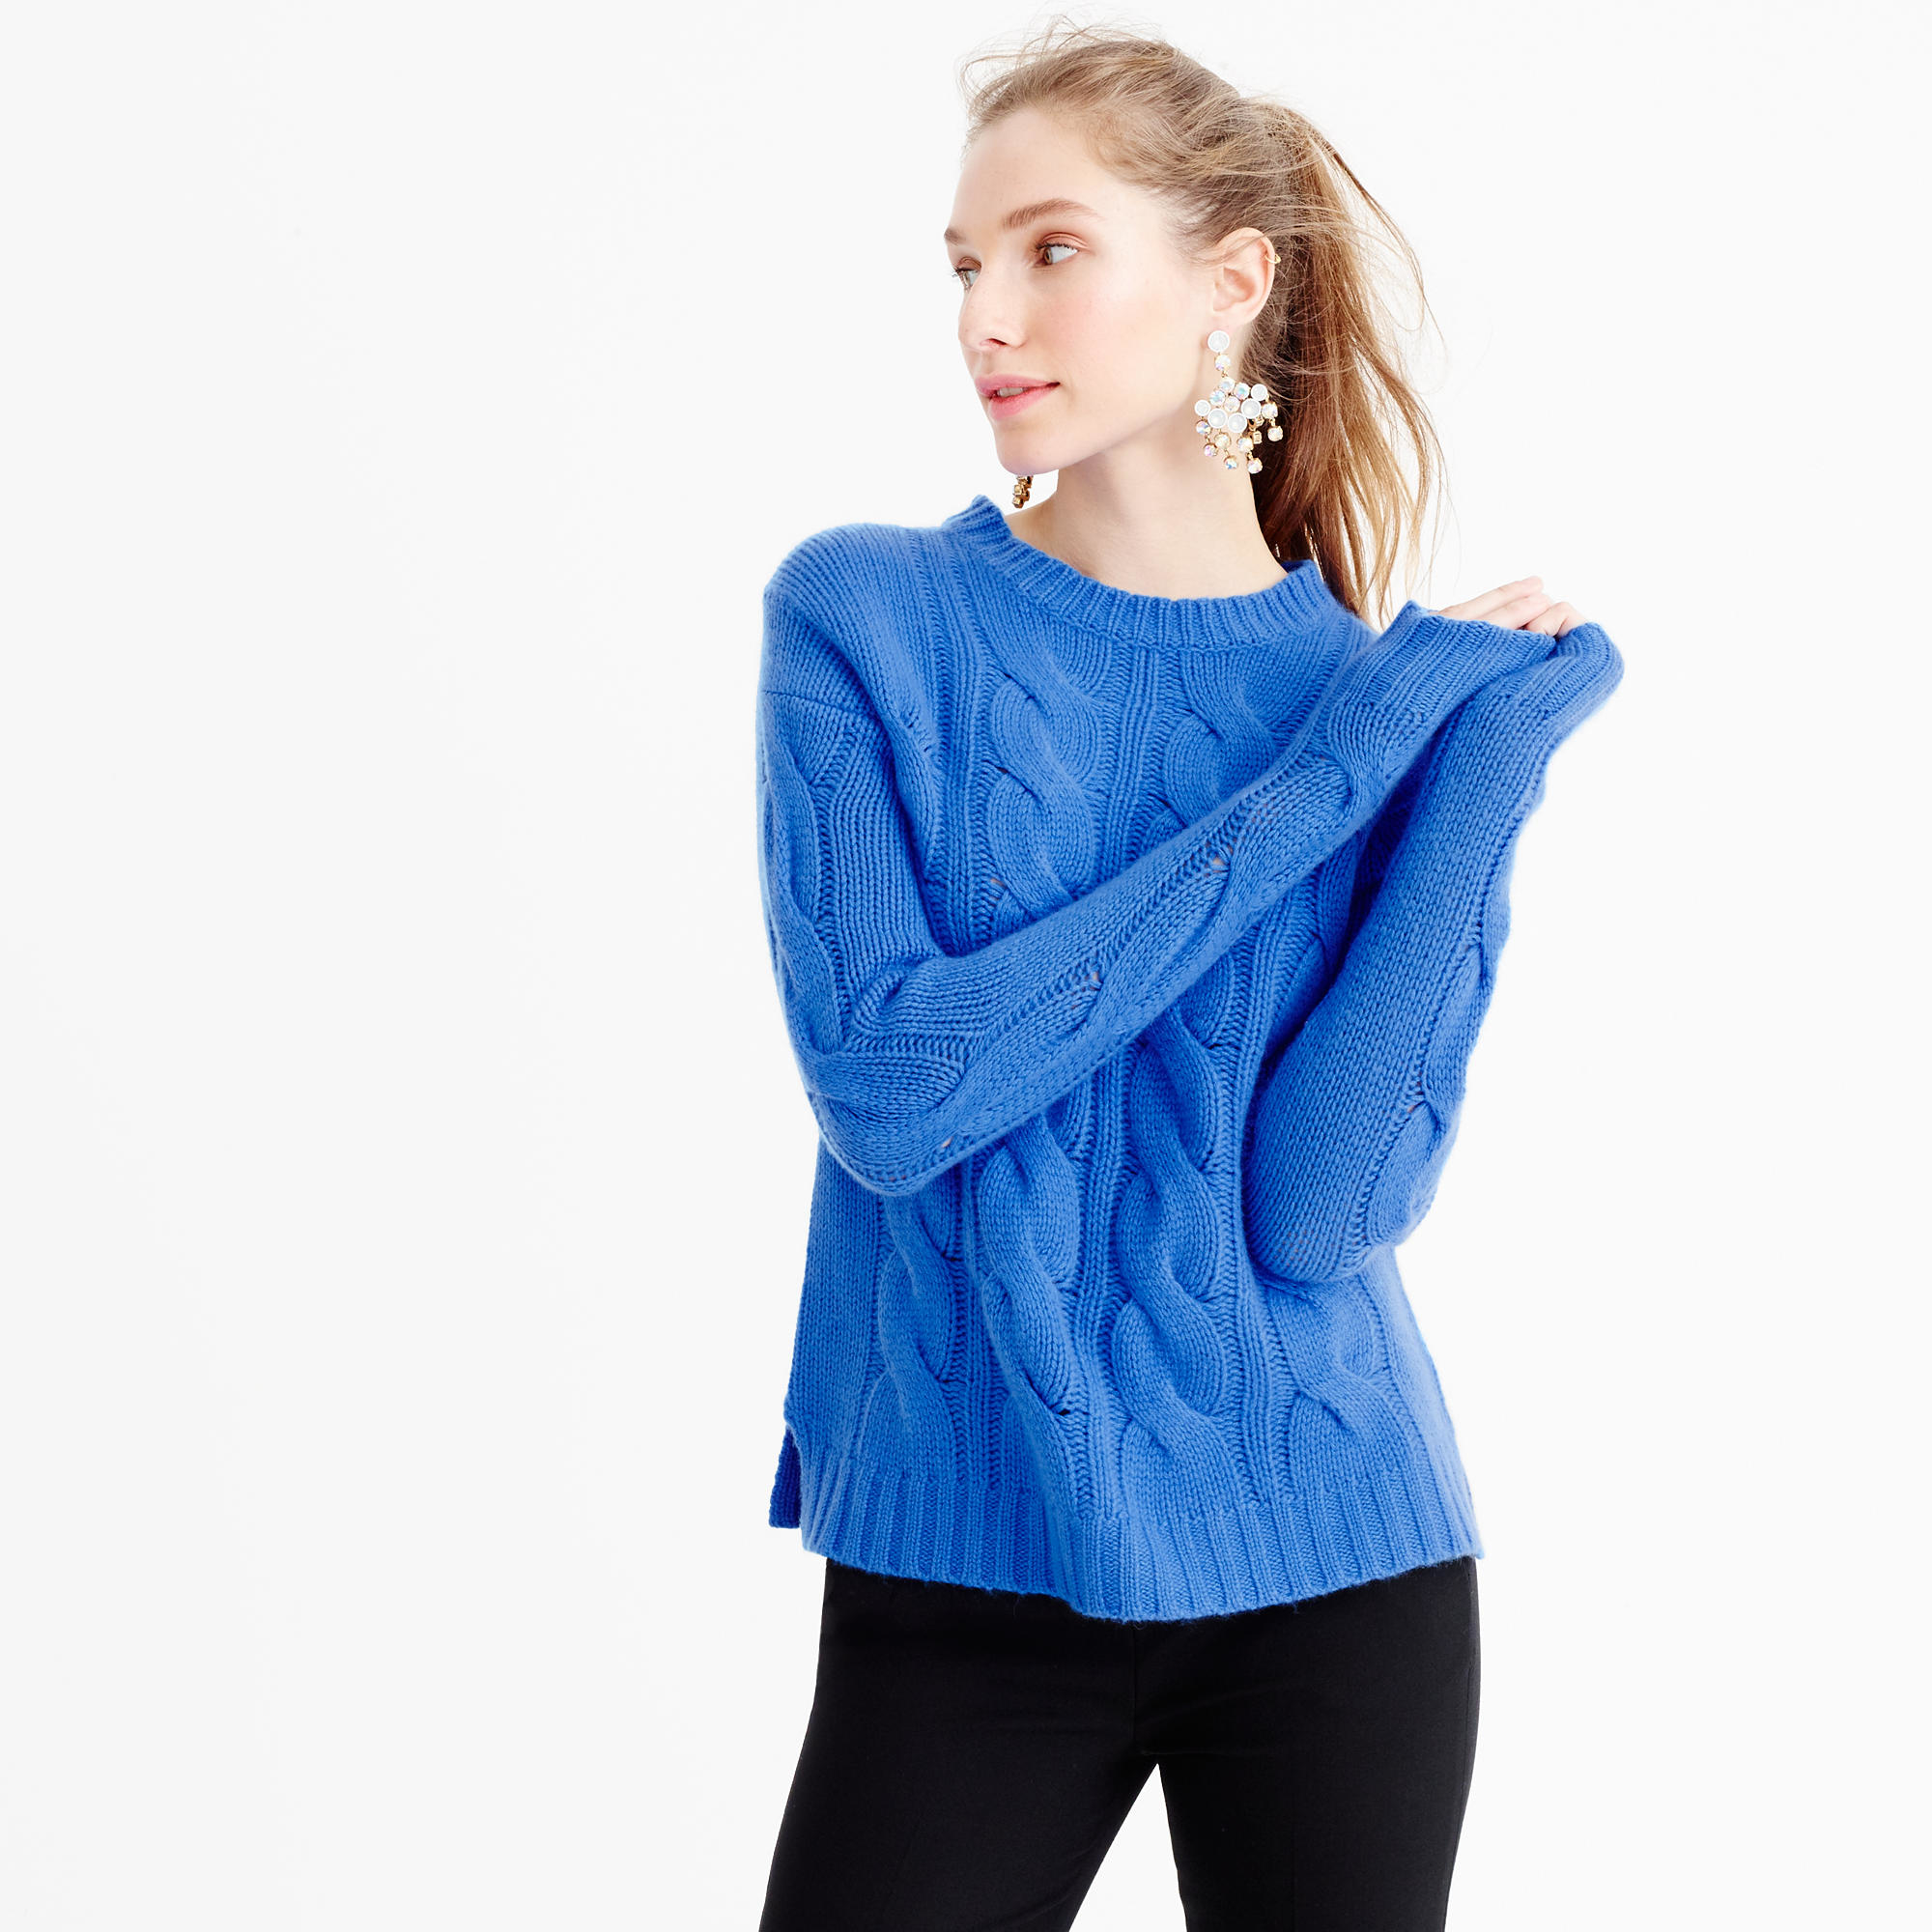 J.crew Italian Cashmere Cable Sweater in Blue   Lyst